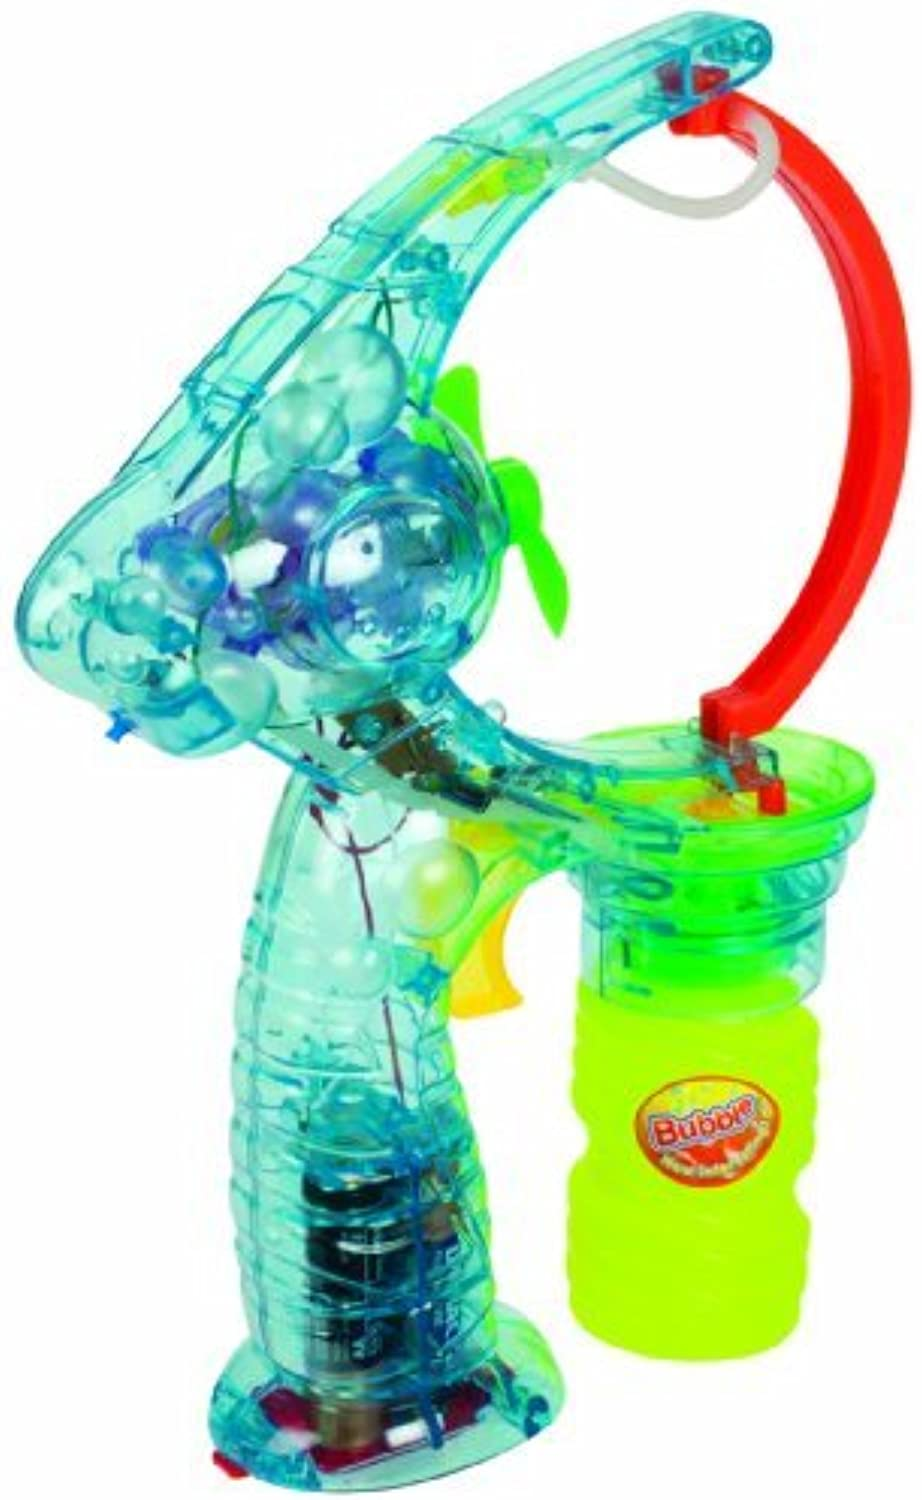 Toysmith Colossal Bubble Blower by Toysmith